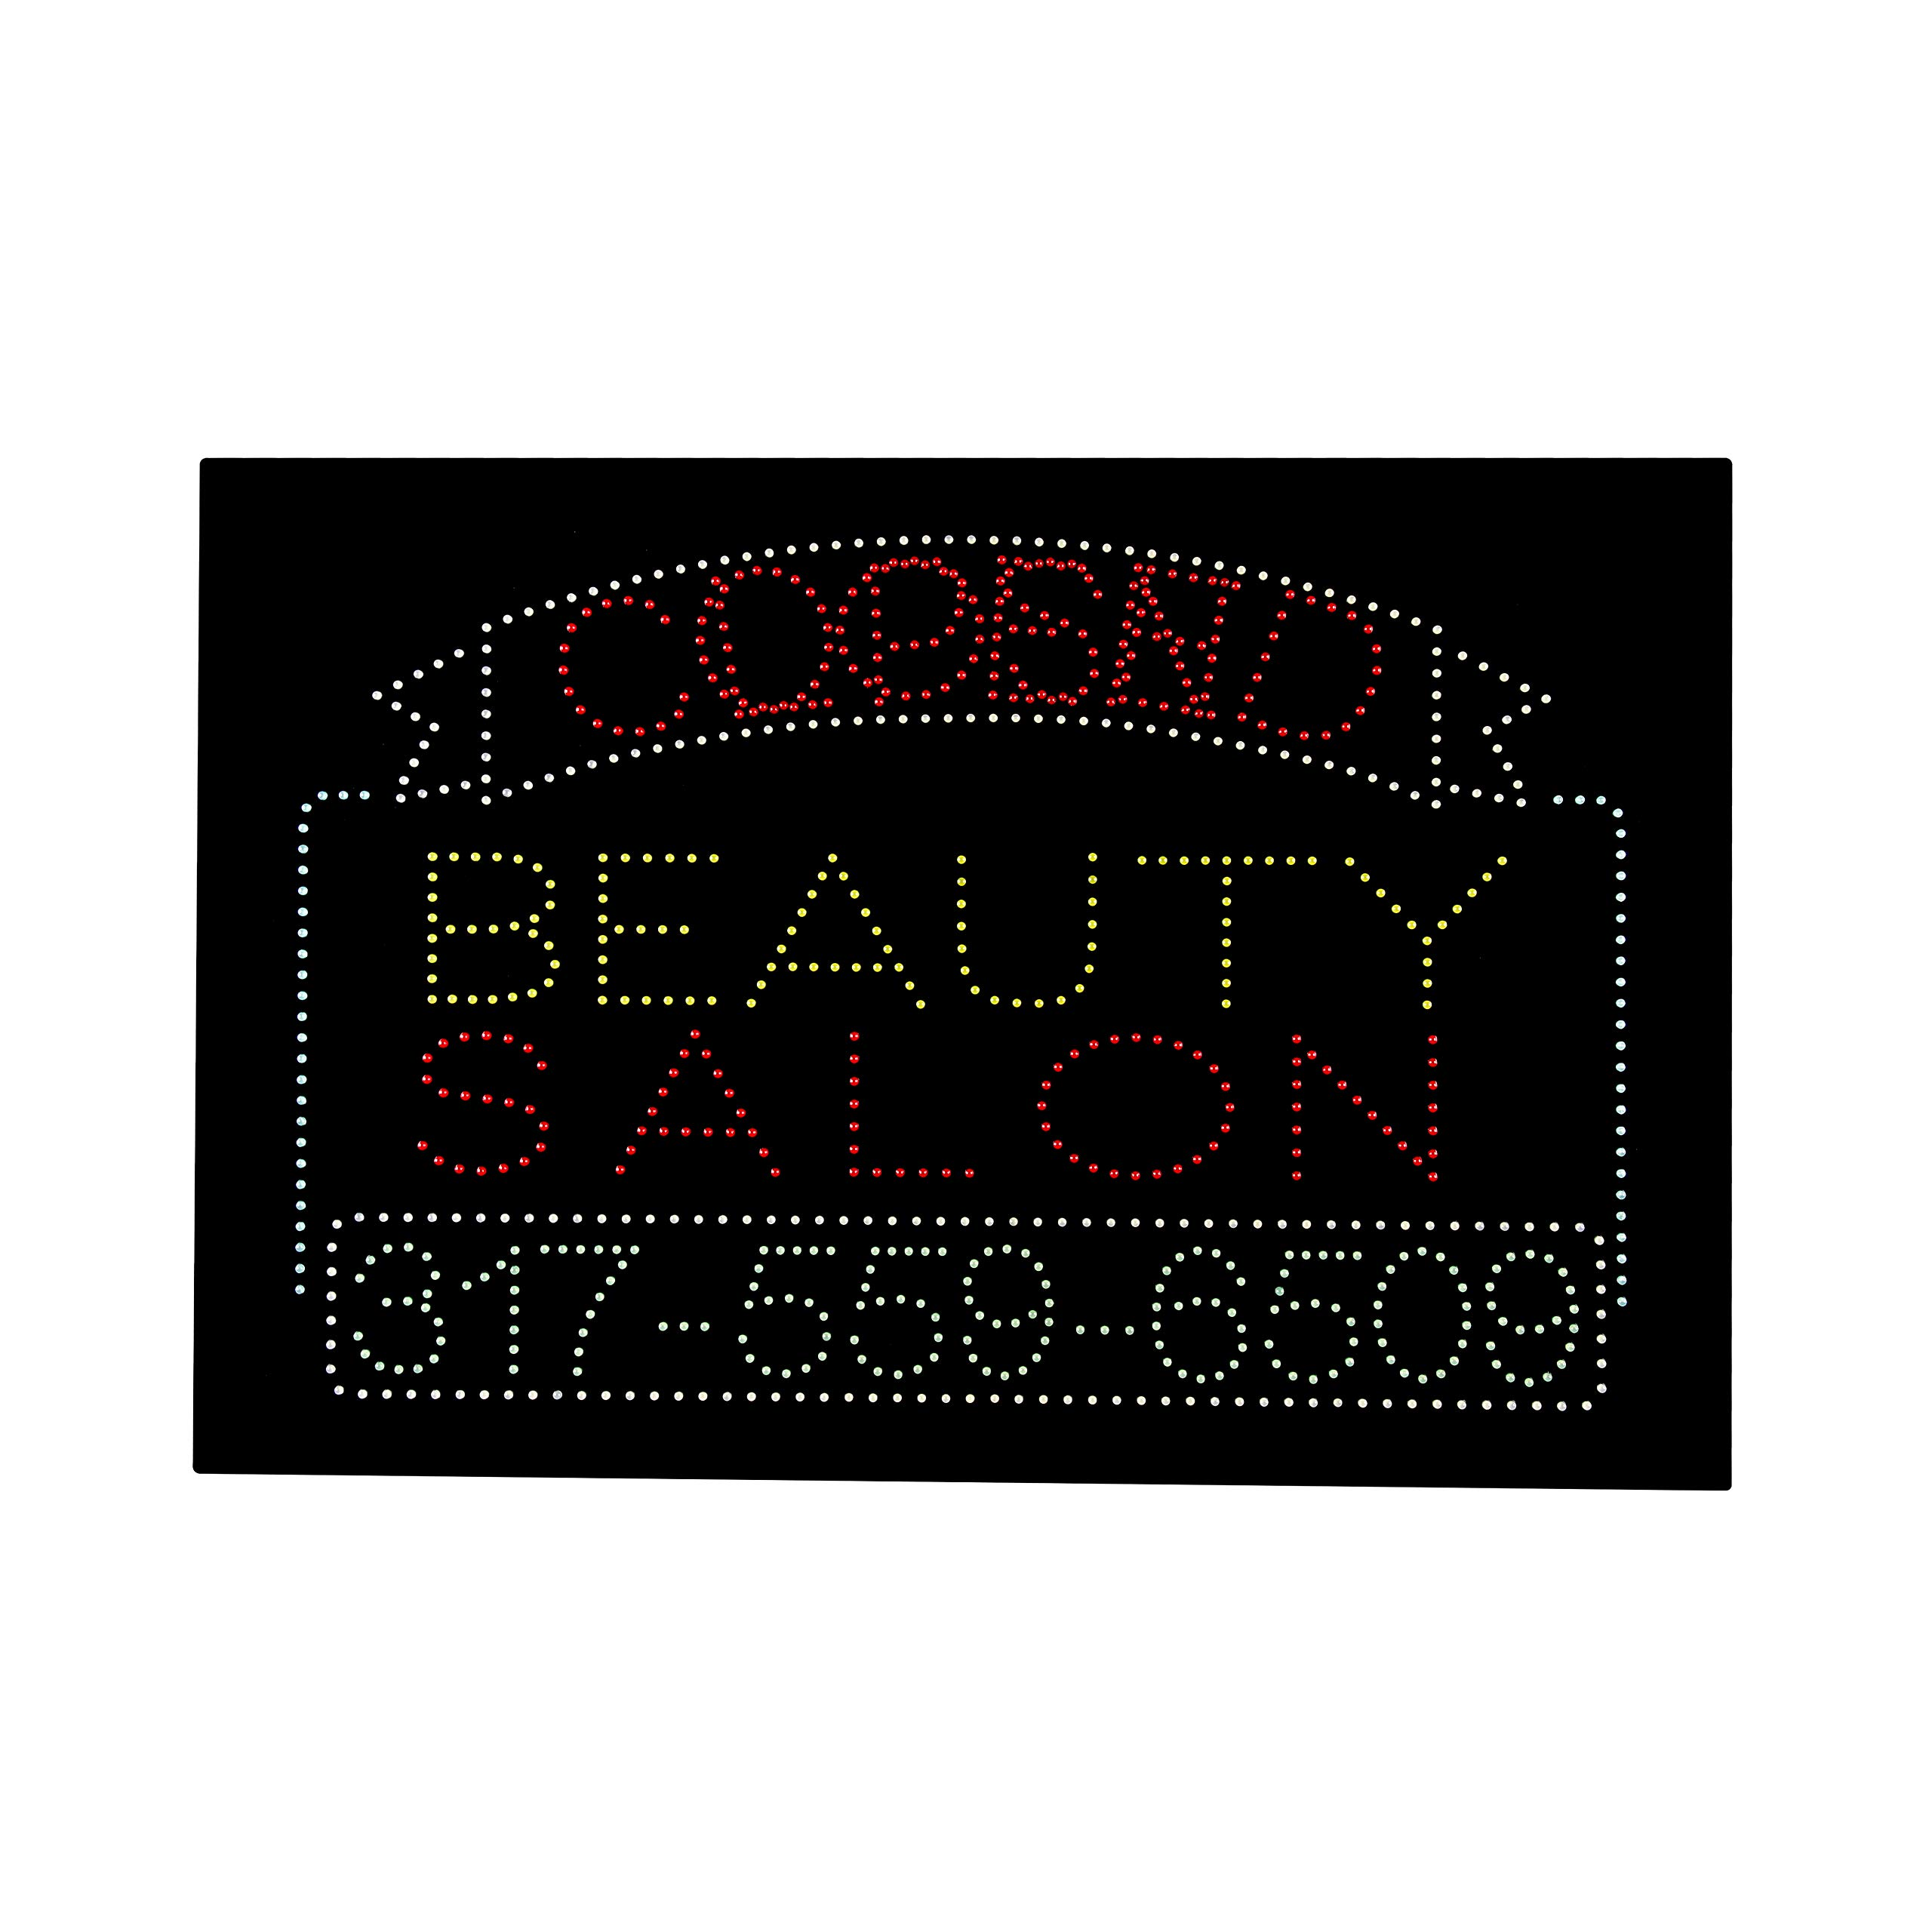 LED Beauty Salon Open Closed 2 in 1 Light Sign Super Bright Electric Advertising Message Display Board for Nails Spa Pedicure Facial Waxing Business Shop Store Window Bedroom 36 x 24 inches by HIDLY (Image #2)